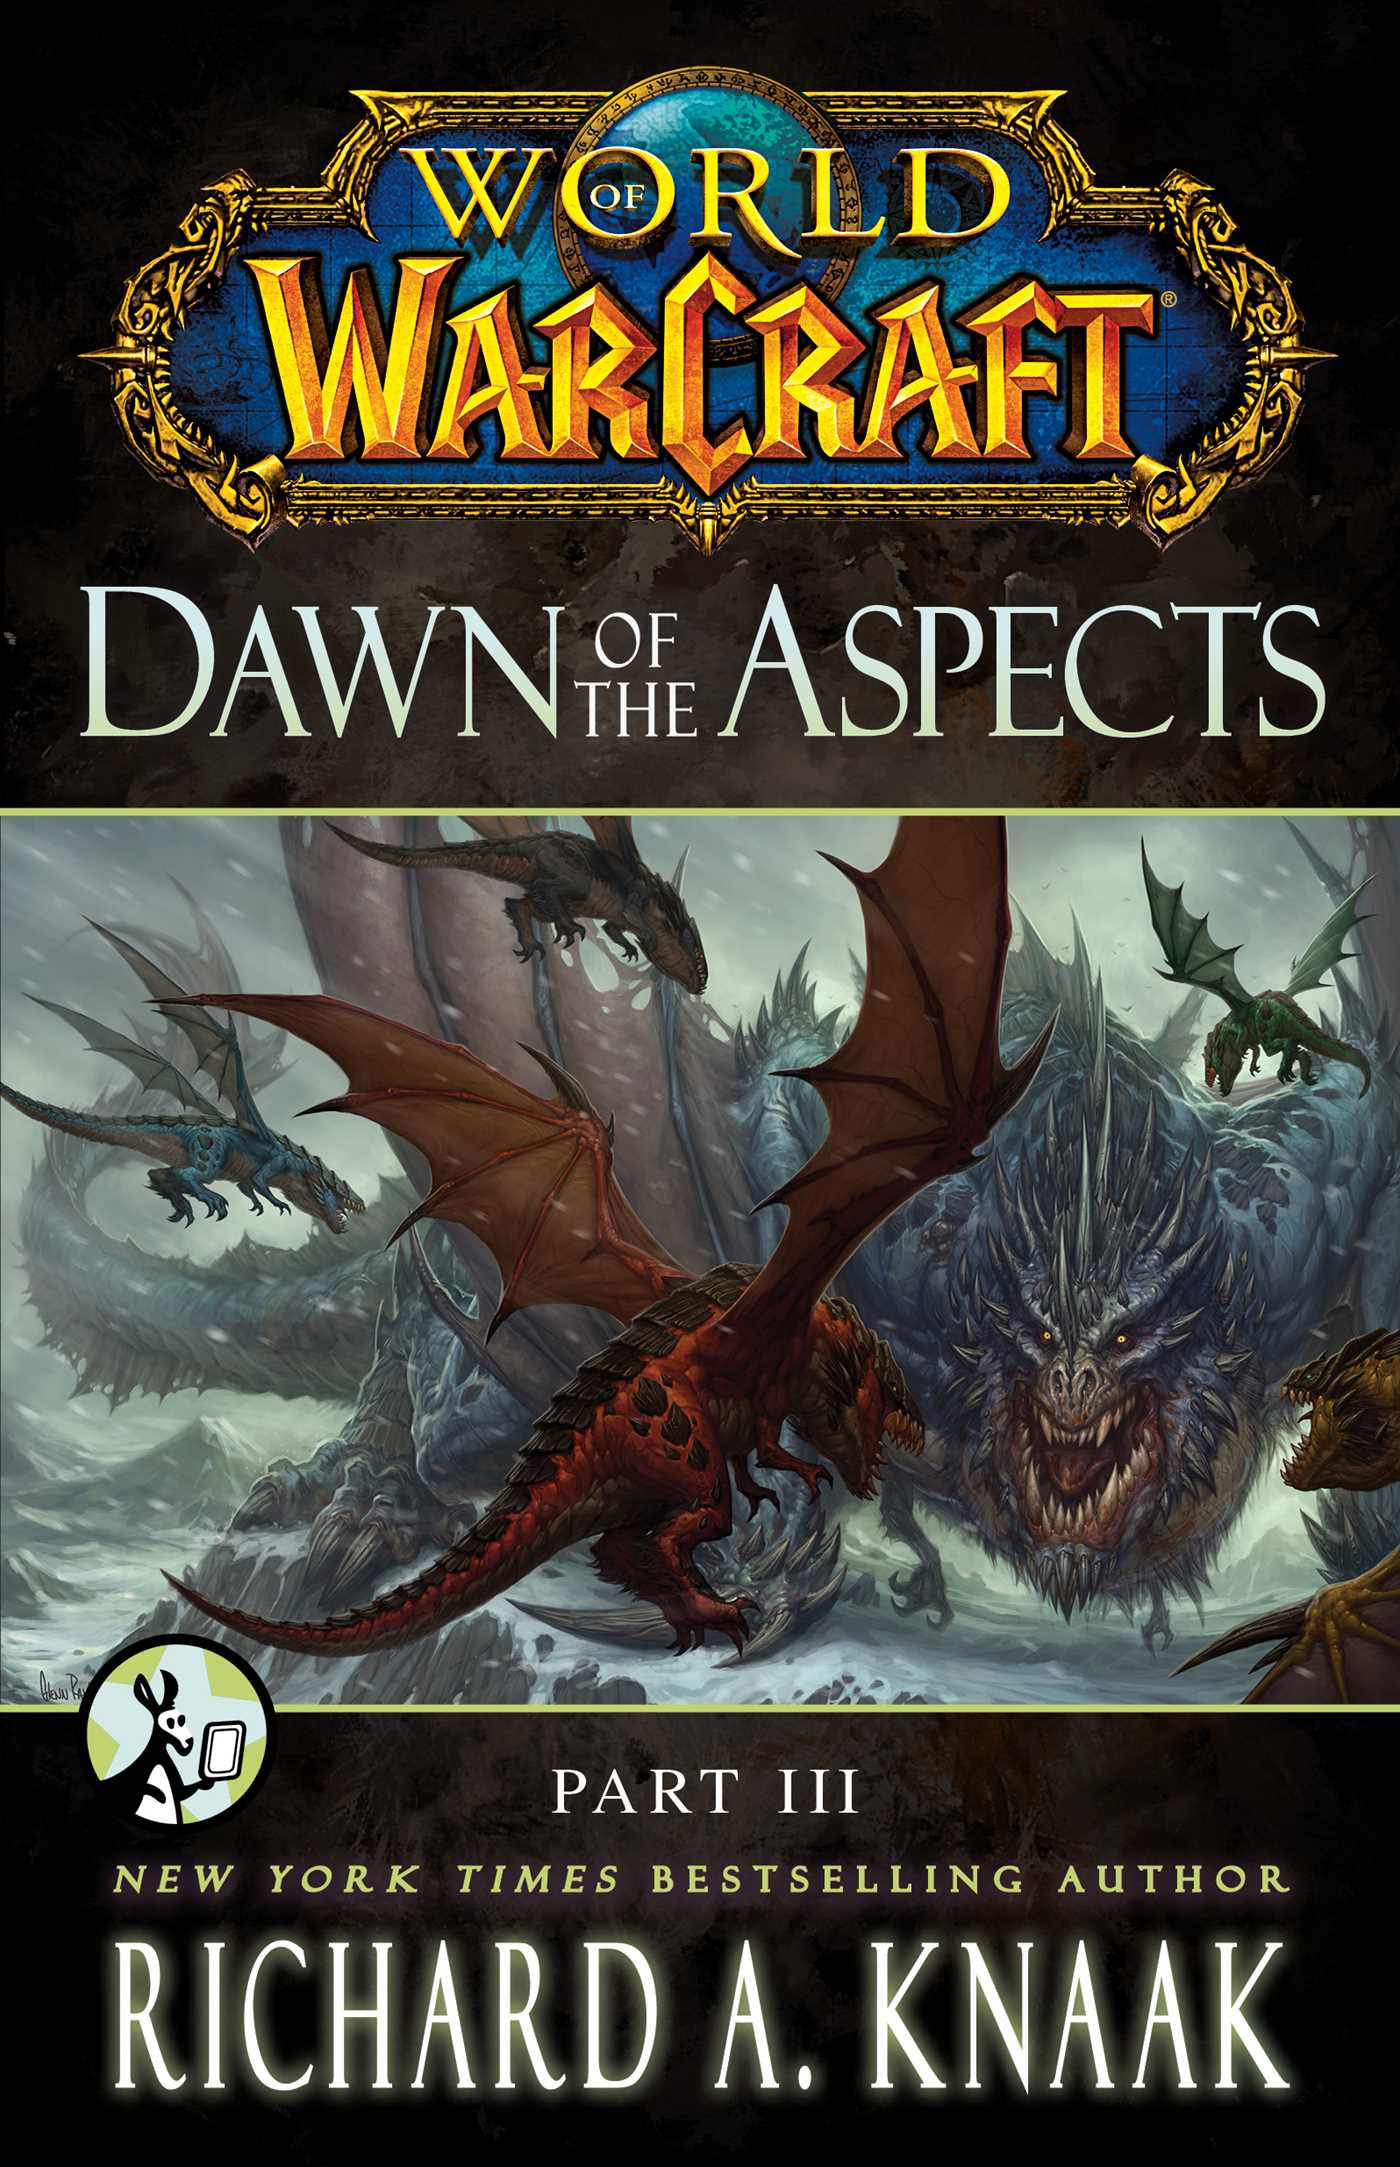 World-of-warcraft-dawn-of-the-aspects-part-iii-9781476708621_hr